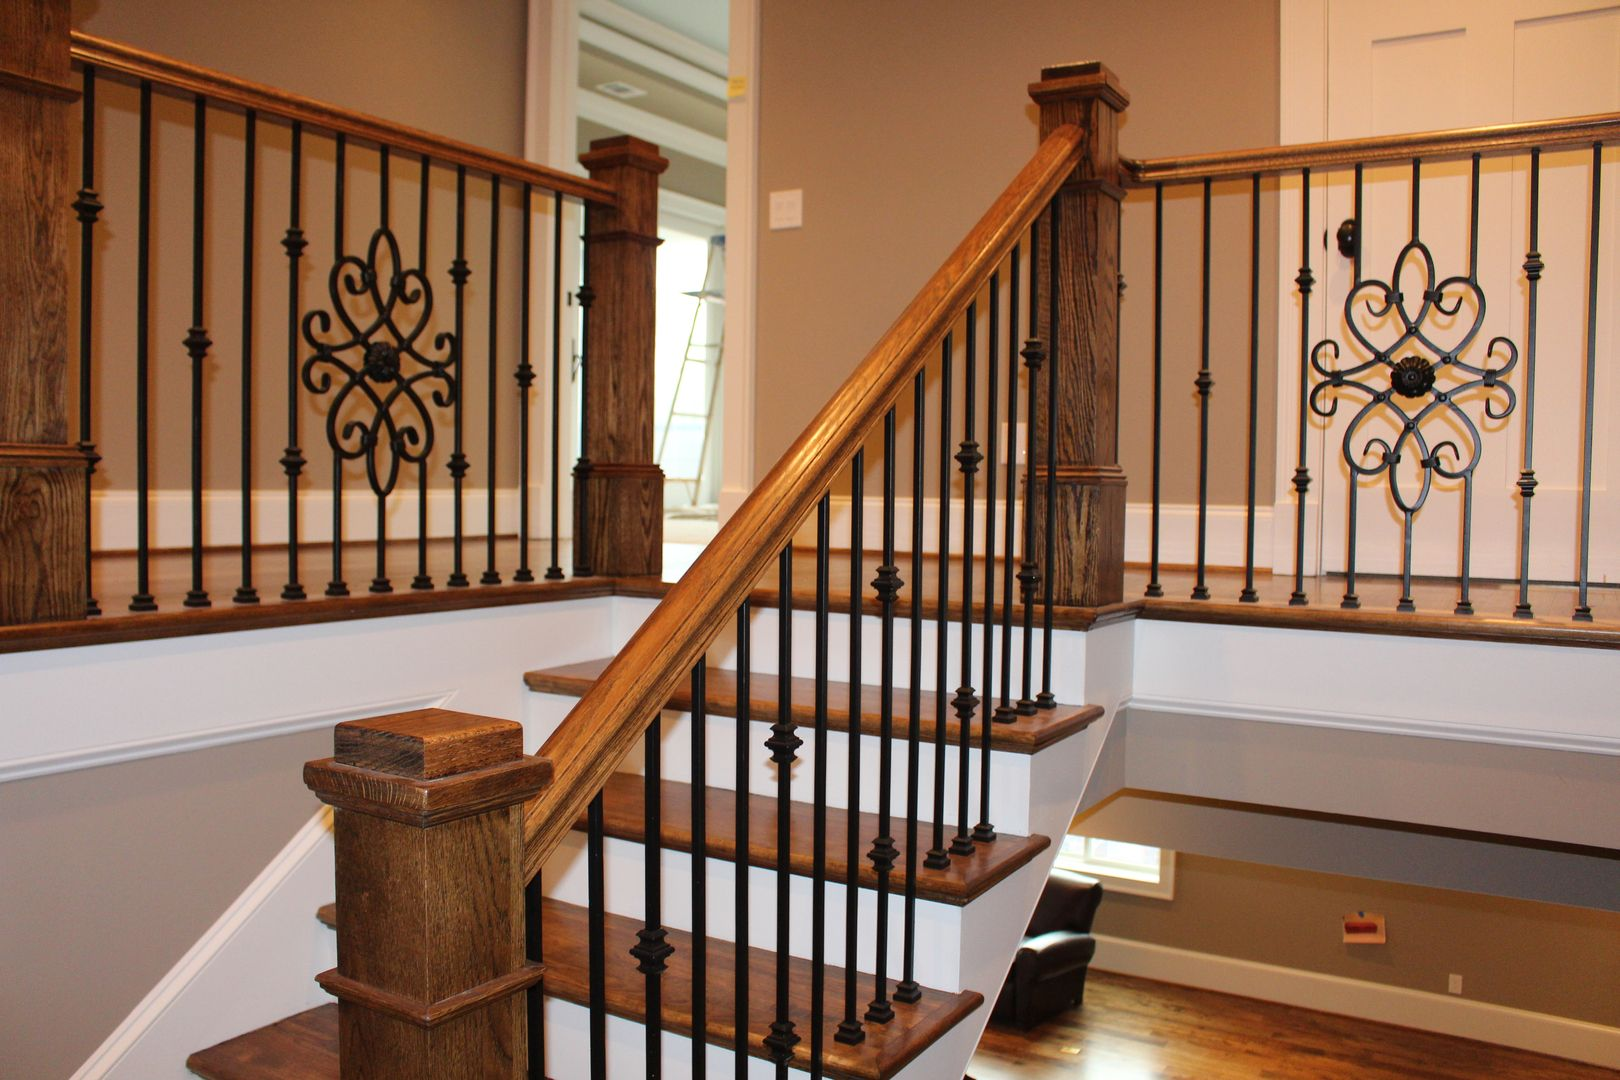 Advanced Staircase Inc. Staircase Products Provides Top Quality Stair Parts  Including Iron Balusters, Box Newel Posts, Wood Spindles, Custom Handrails,  ...